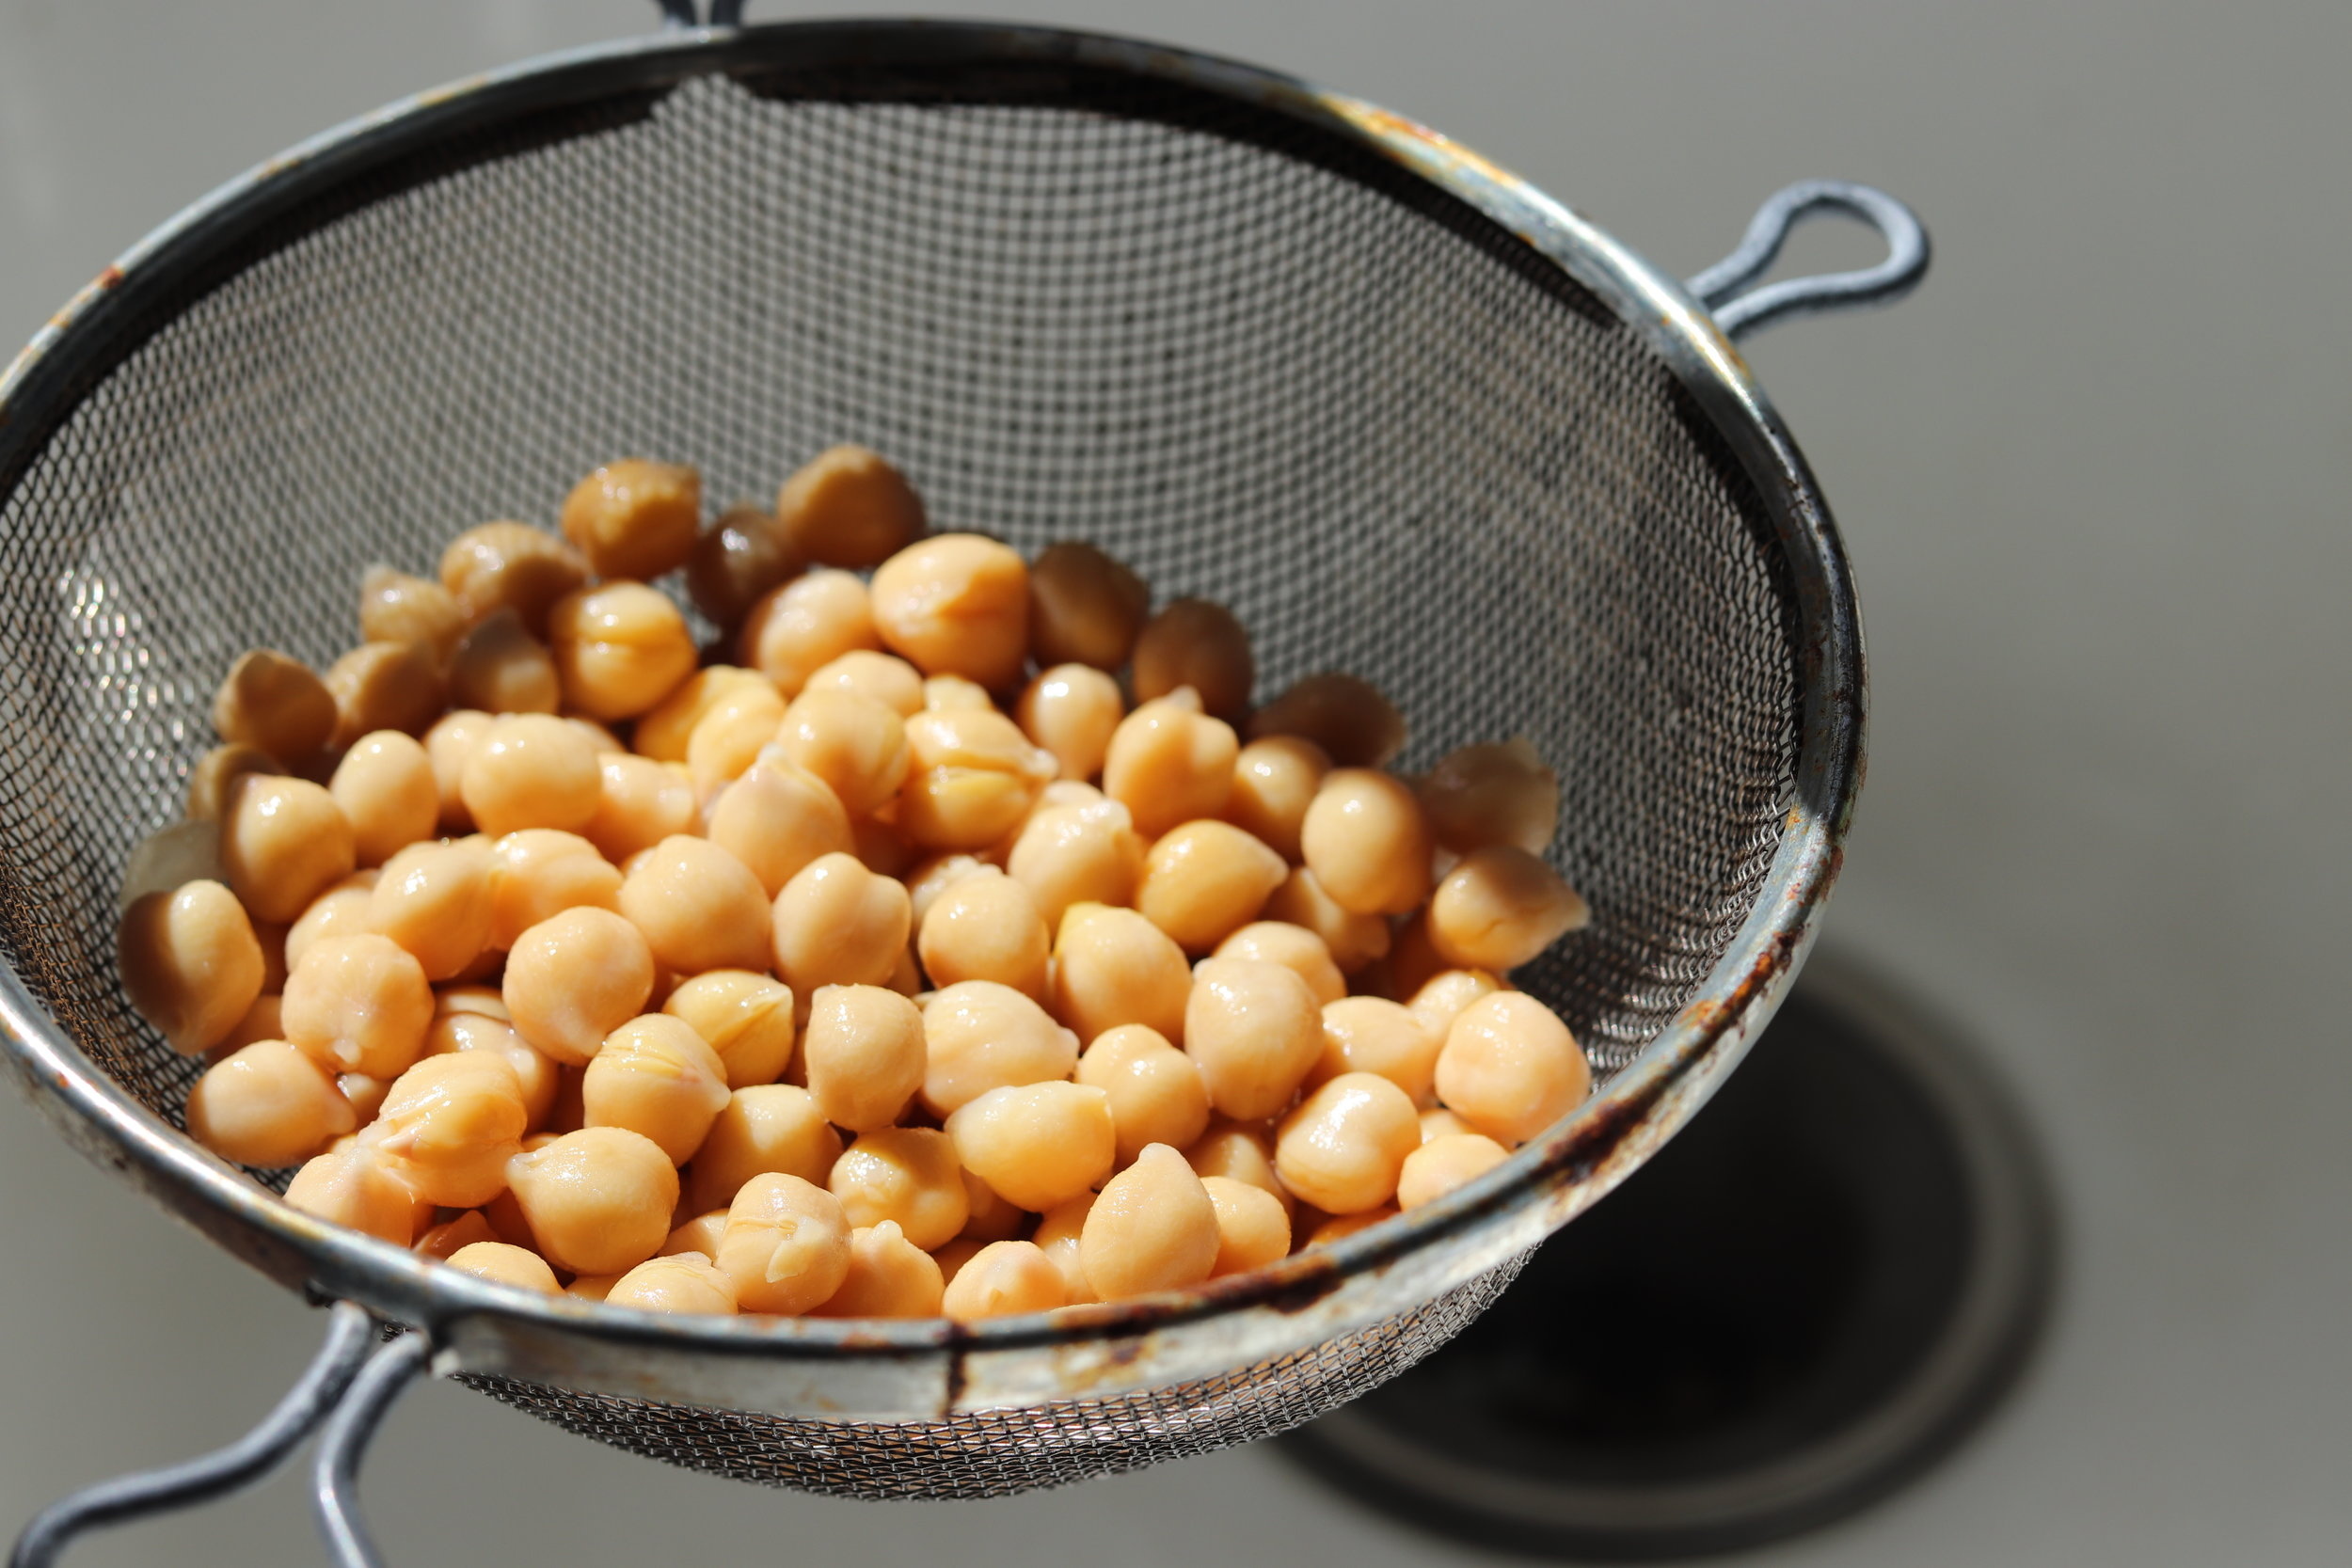 Step 1 : Rinse the canned beans under cold water. You can reserve some of the chickpea liquid to help with blending and boost the flavor.